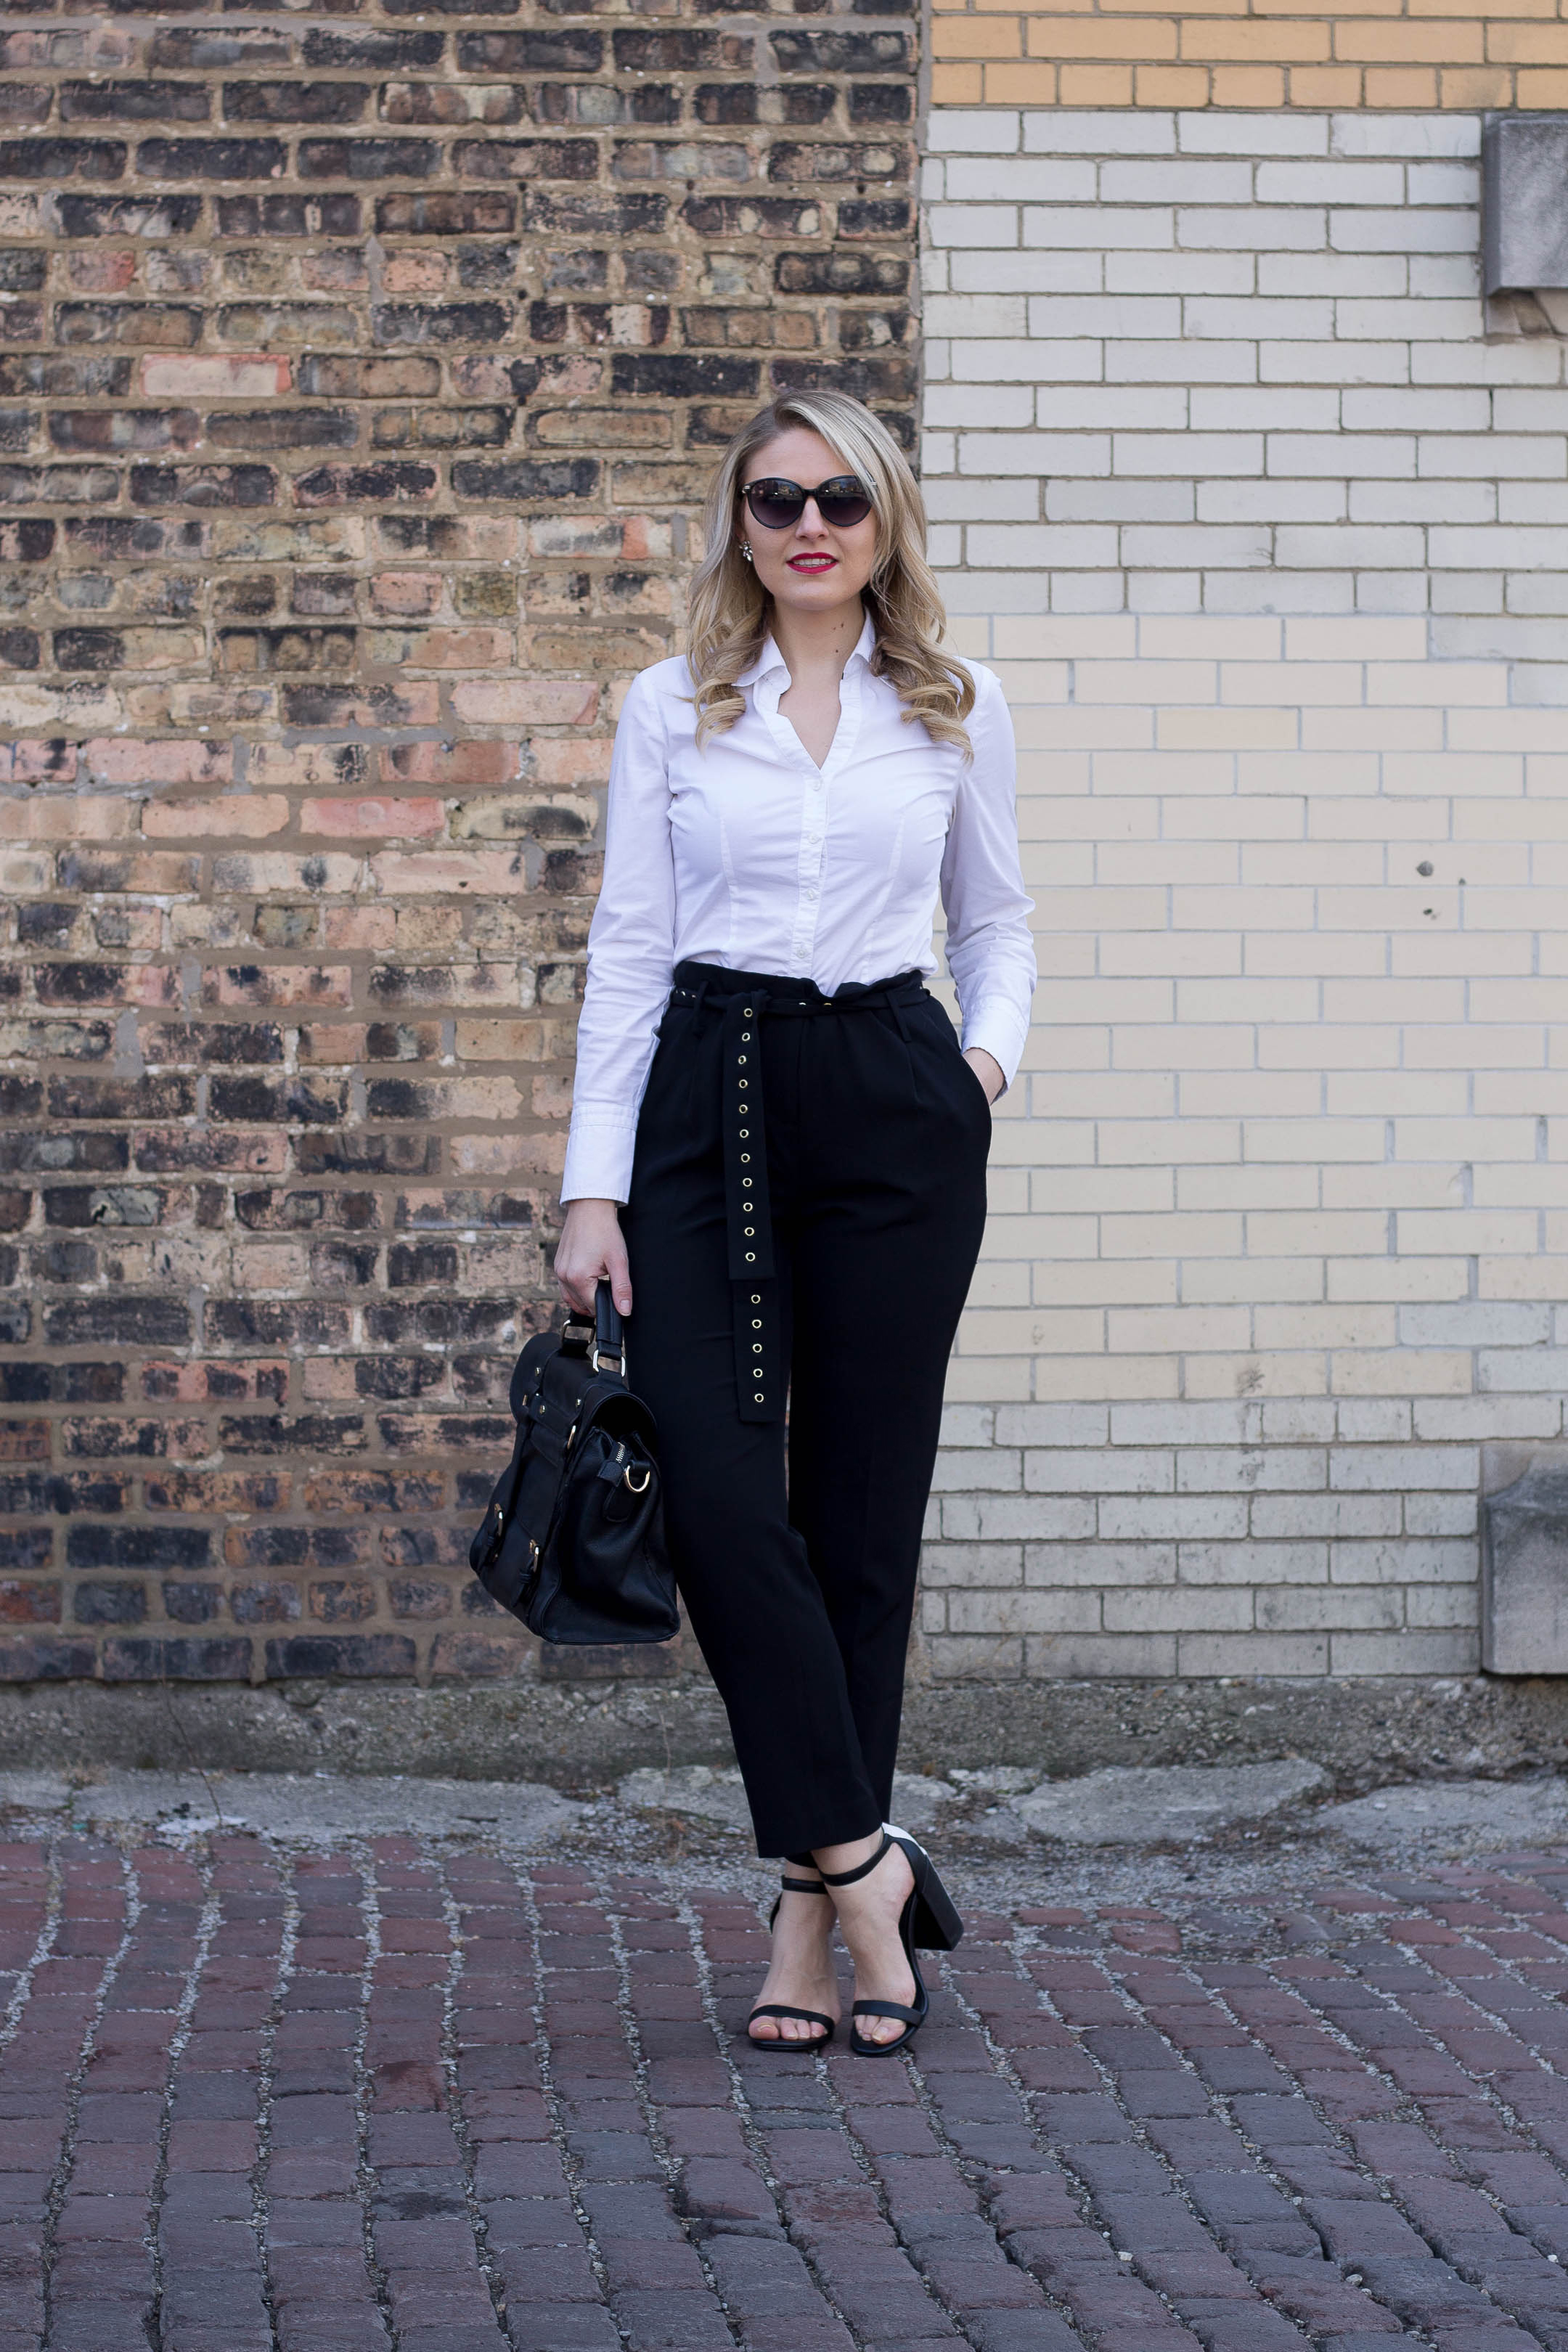 How to wear the Calvin Klein Studded Belt Pant